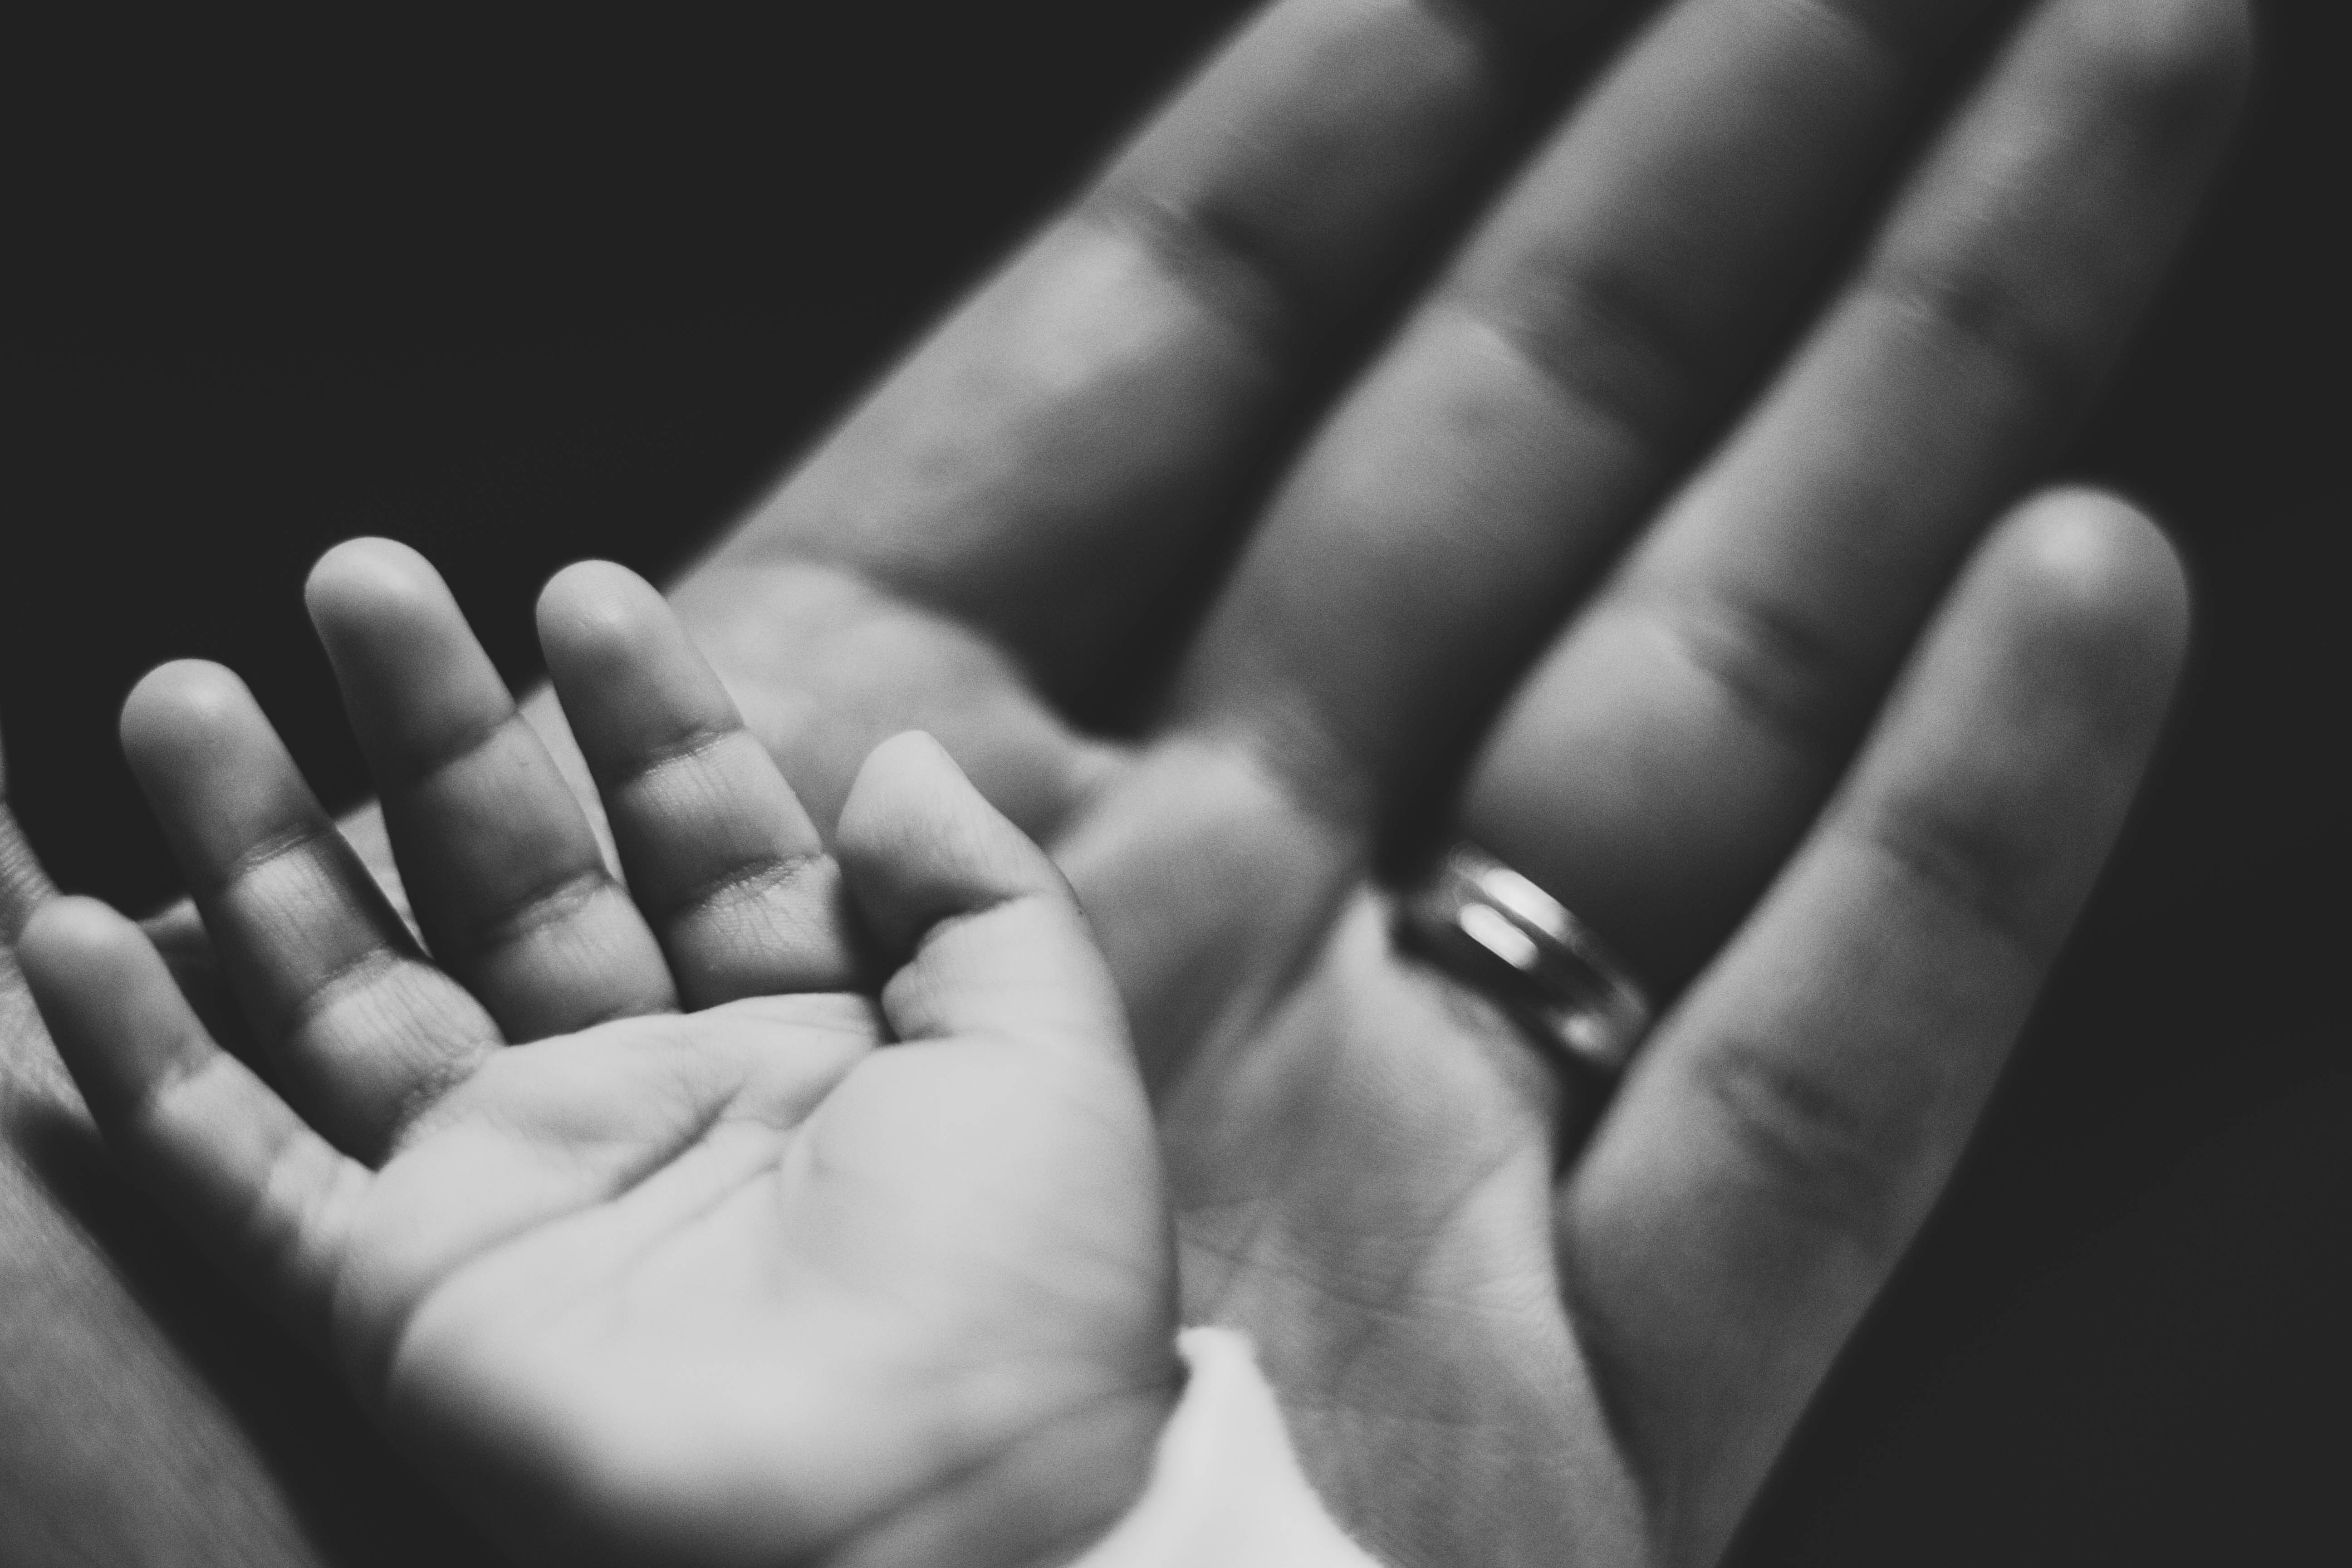 grayscale photography of baby's palm on adult